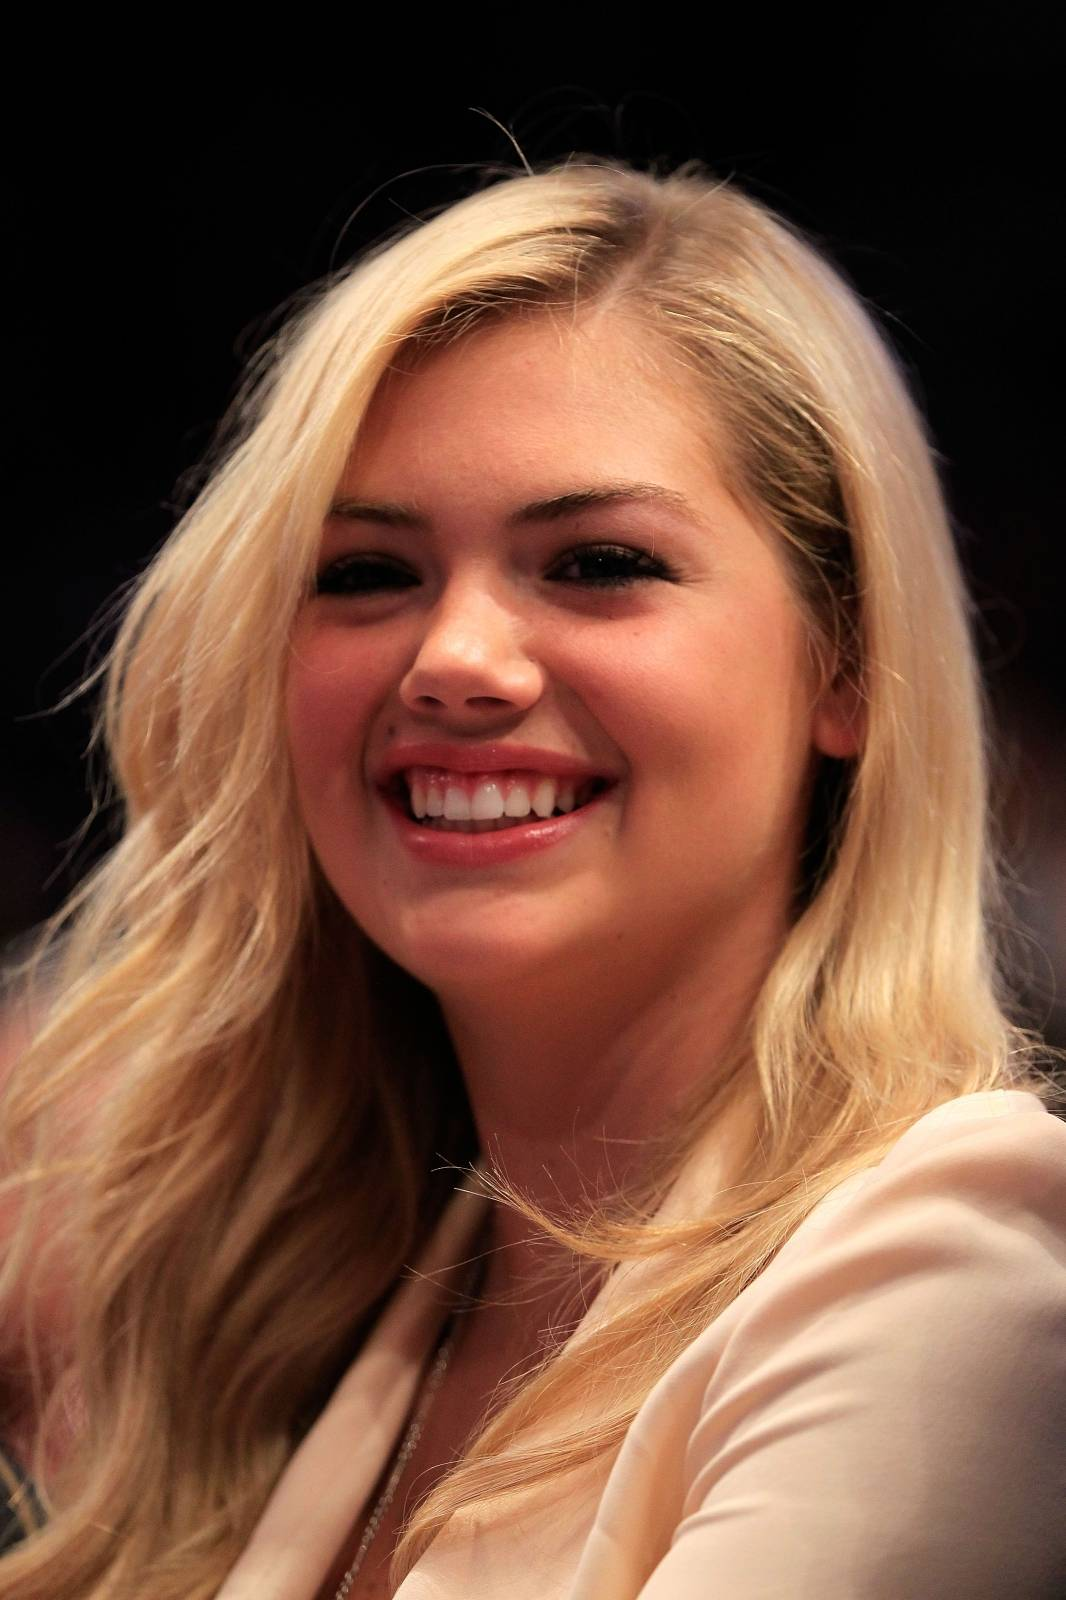 Kate Upton: The 20-year-old Sports Illustrated Cover Girl